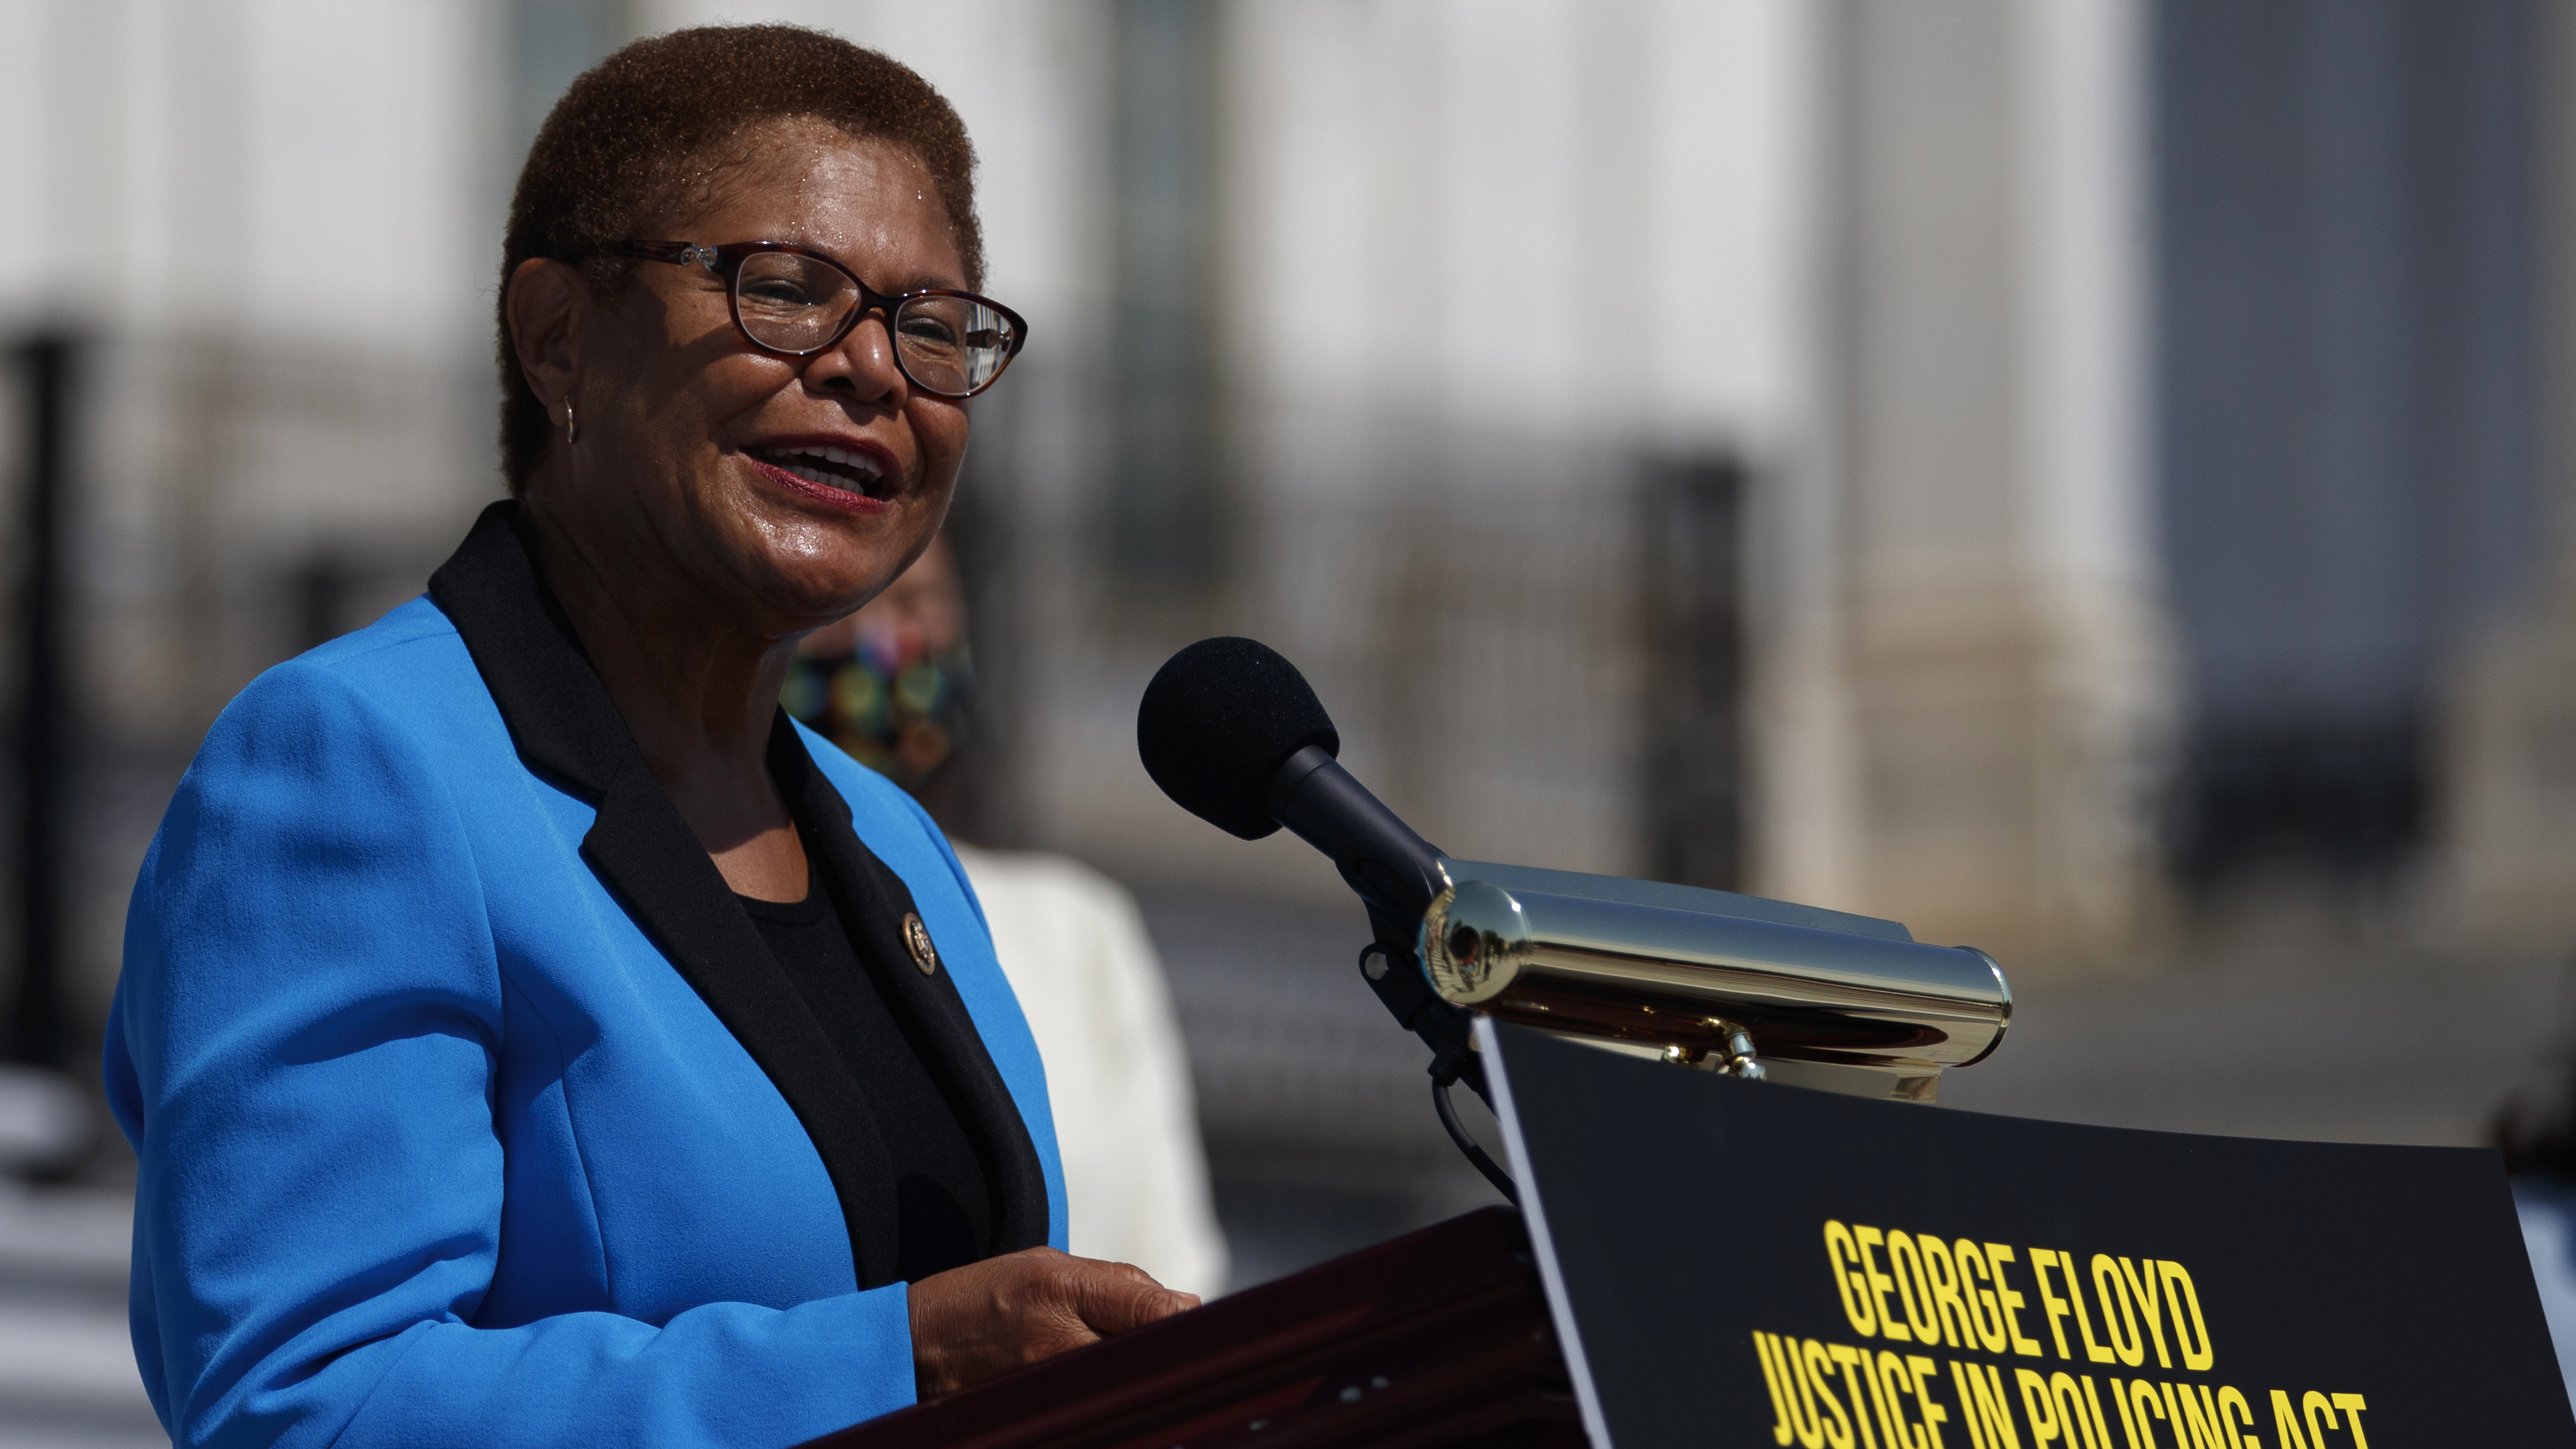 Rep. Karen Bass, D-Calif., has launched a bid to become the next mayor of Los Angeles.